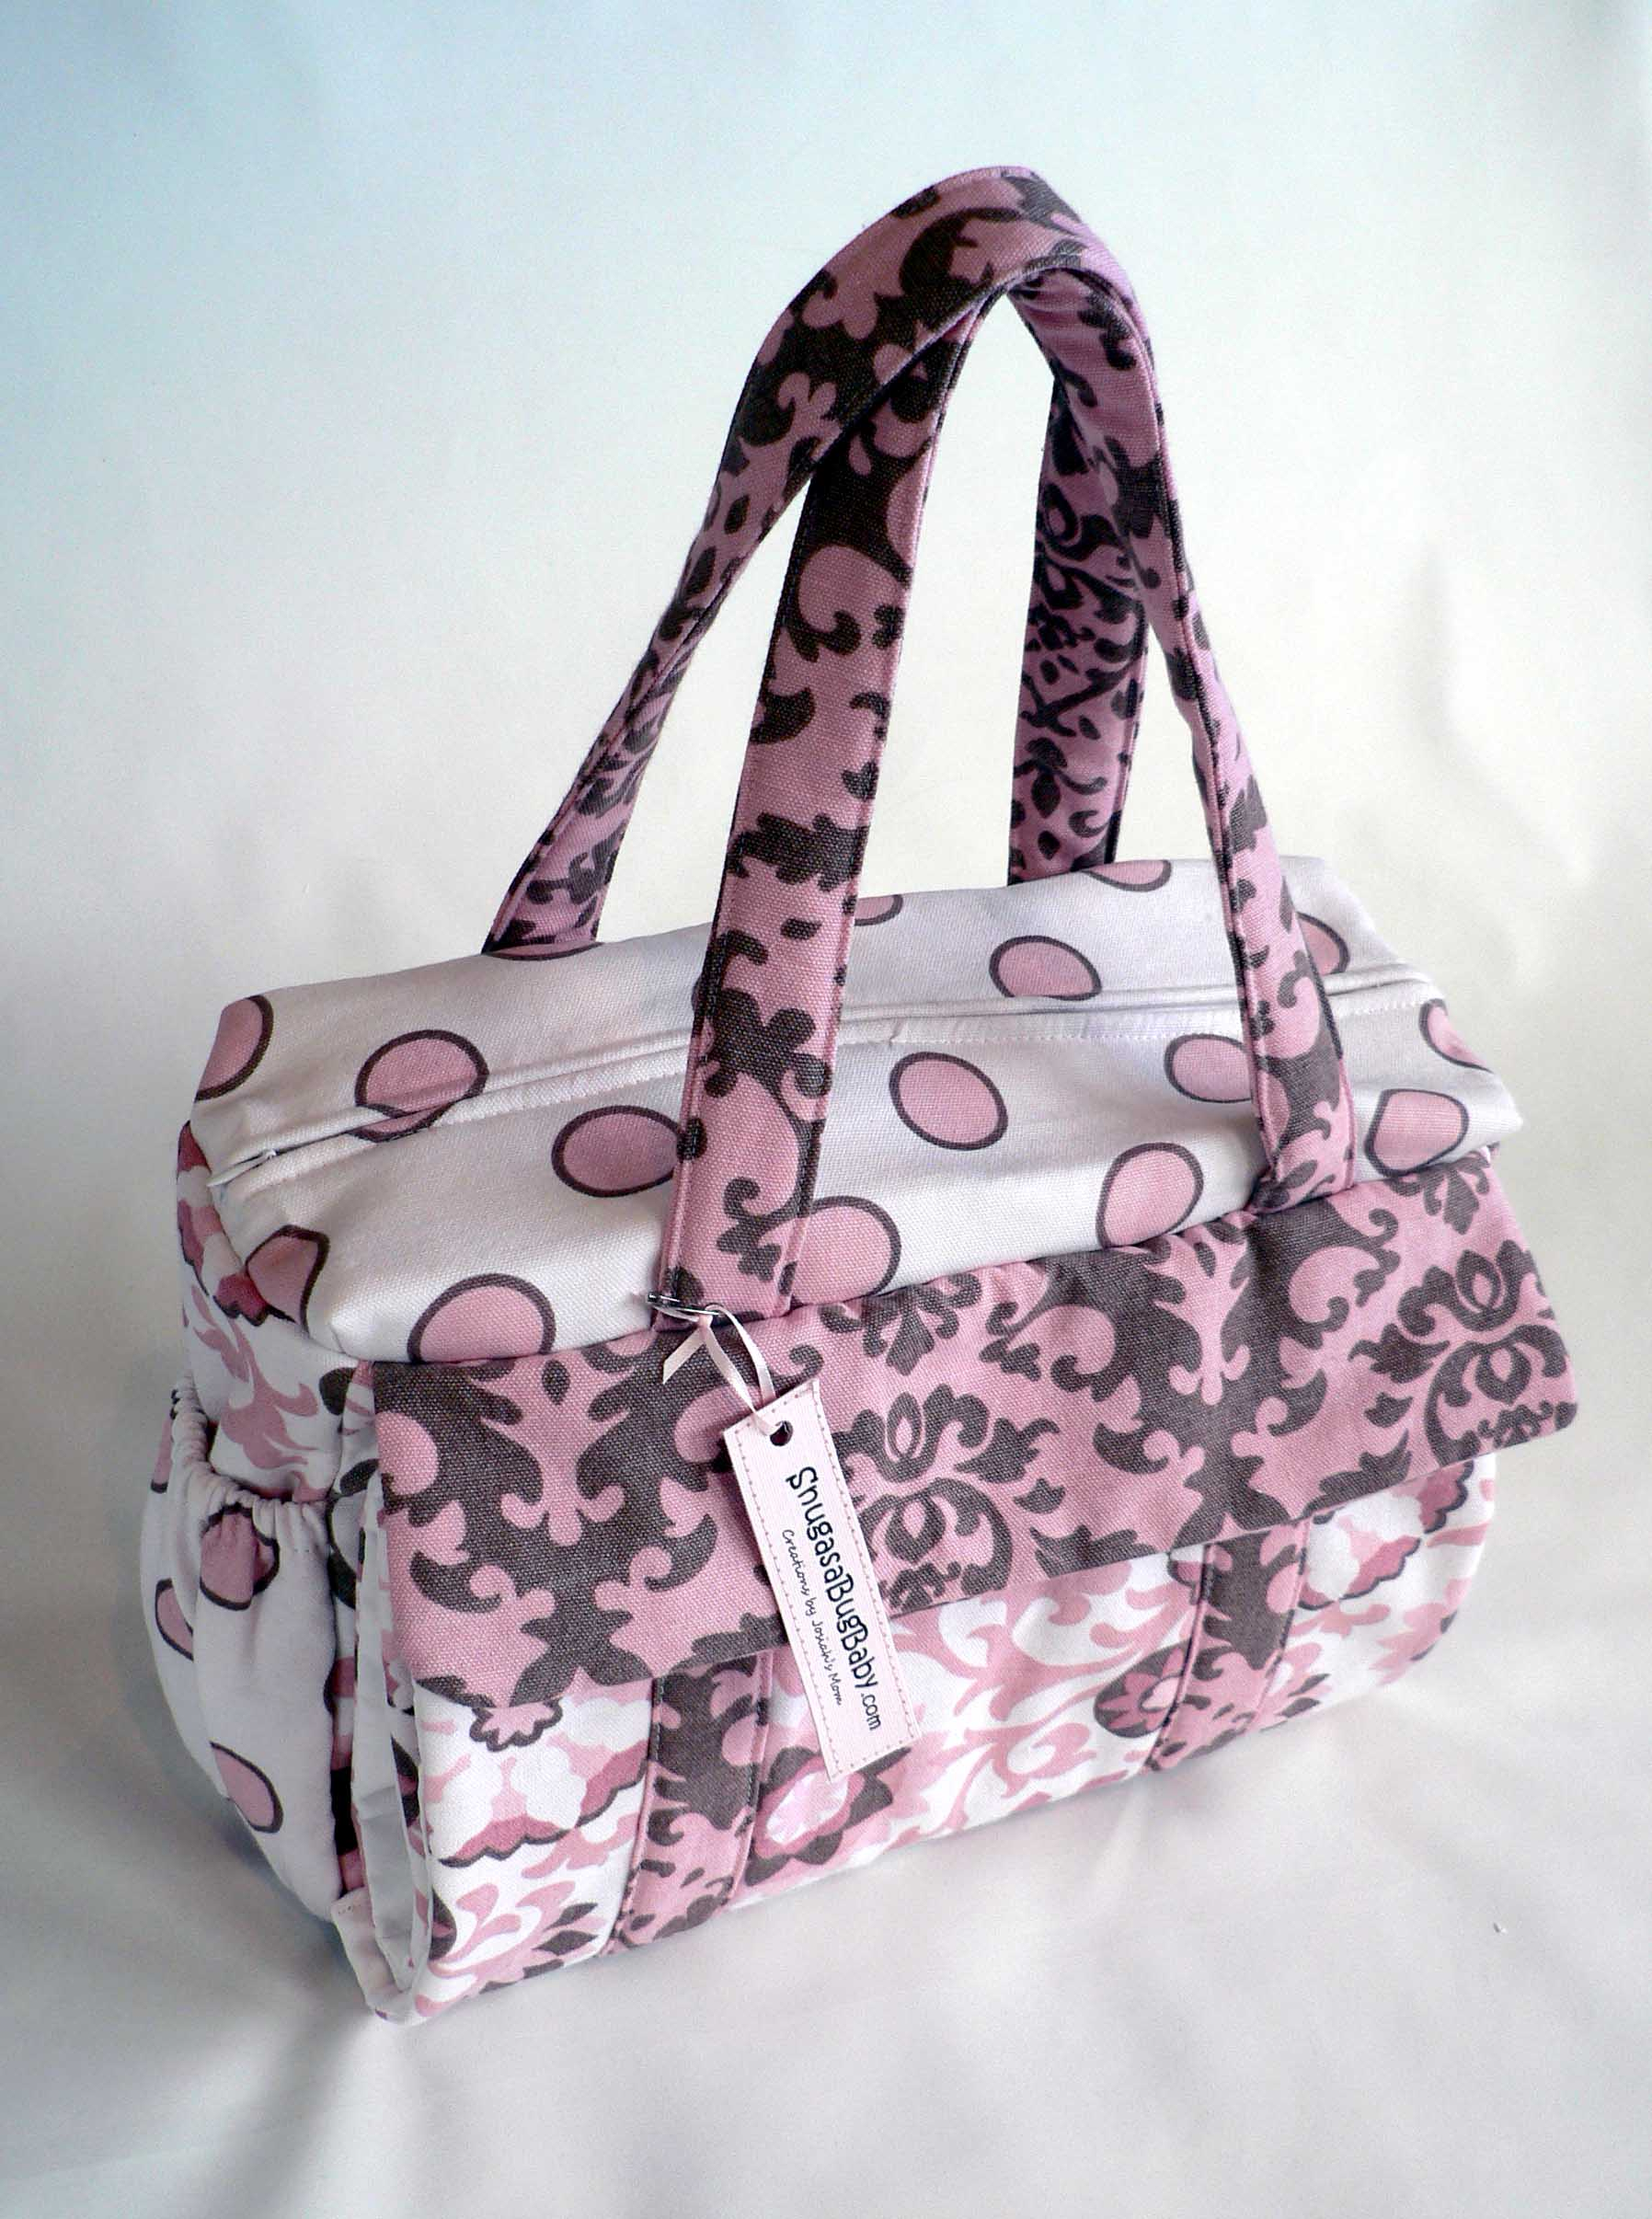 SnugasaBugBaby Diaper Bag in Bubble Gum and Brown | SnugasaBugBaby